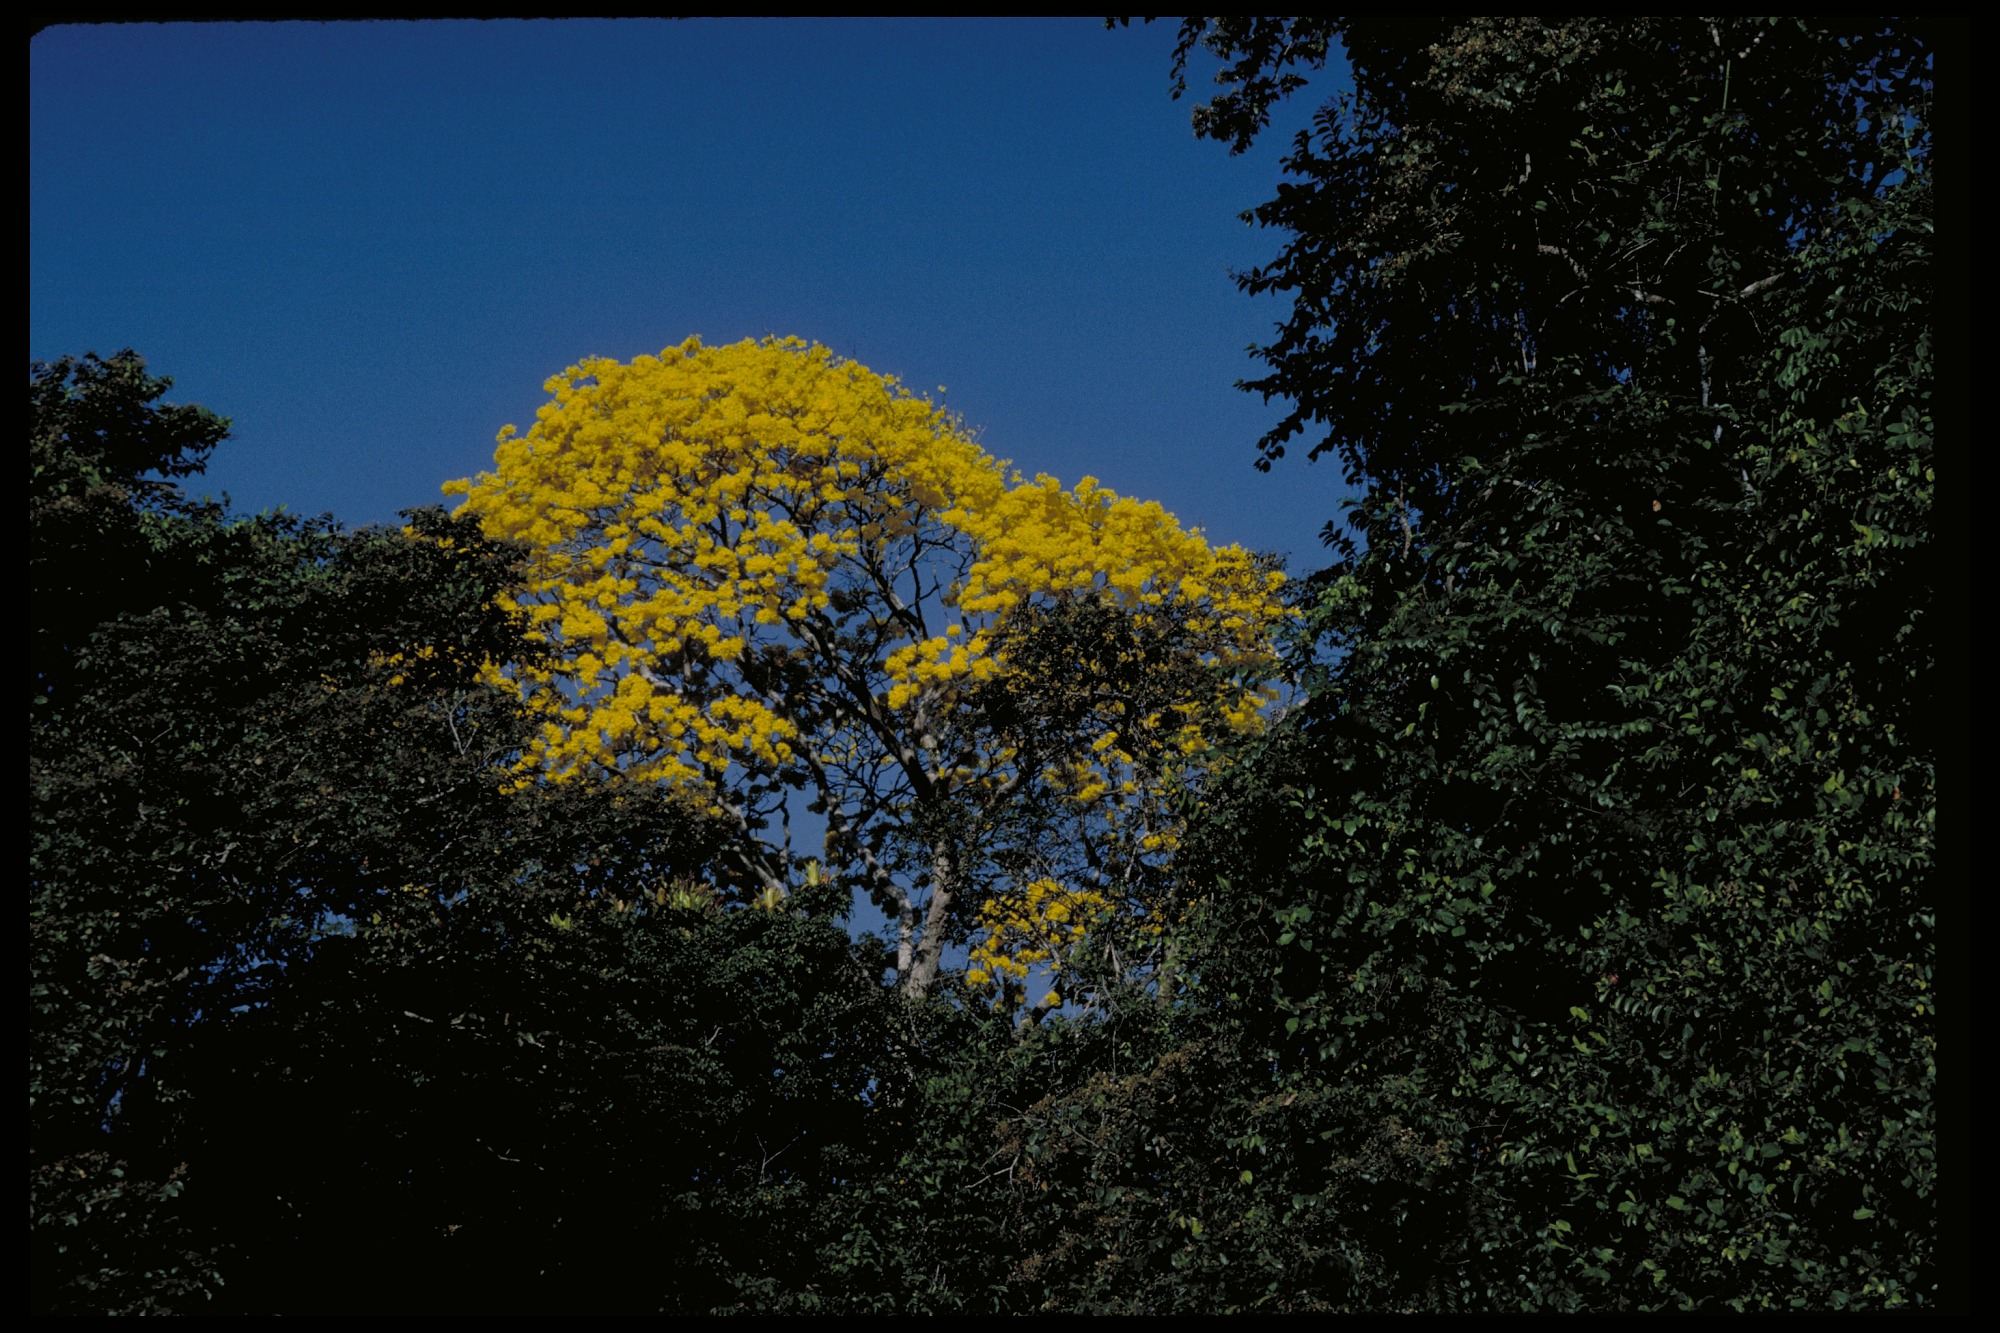 Flowering Trees, Panama, STRI, 1986, Smithsonian Institution Archives, SIA Acc. 11-009 [88-7055].